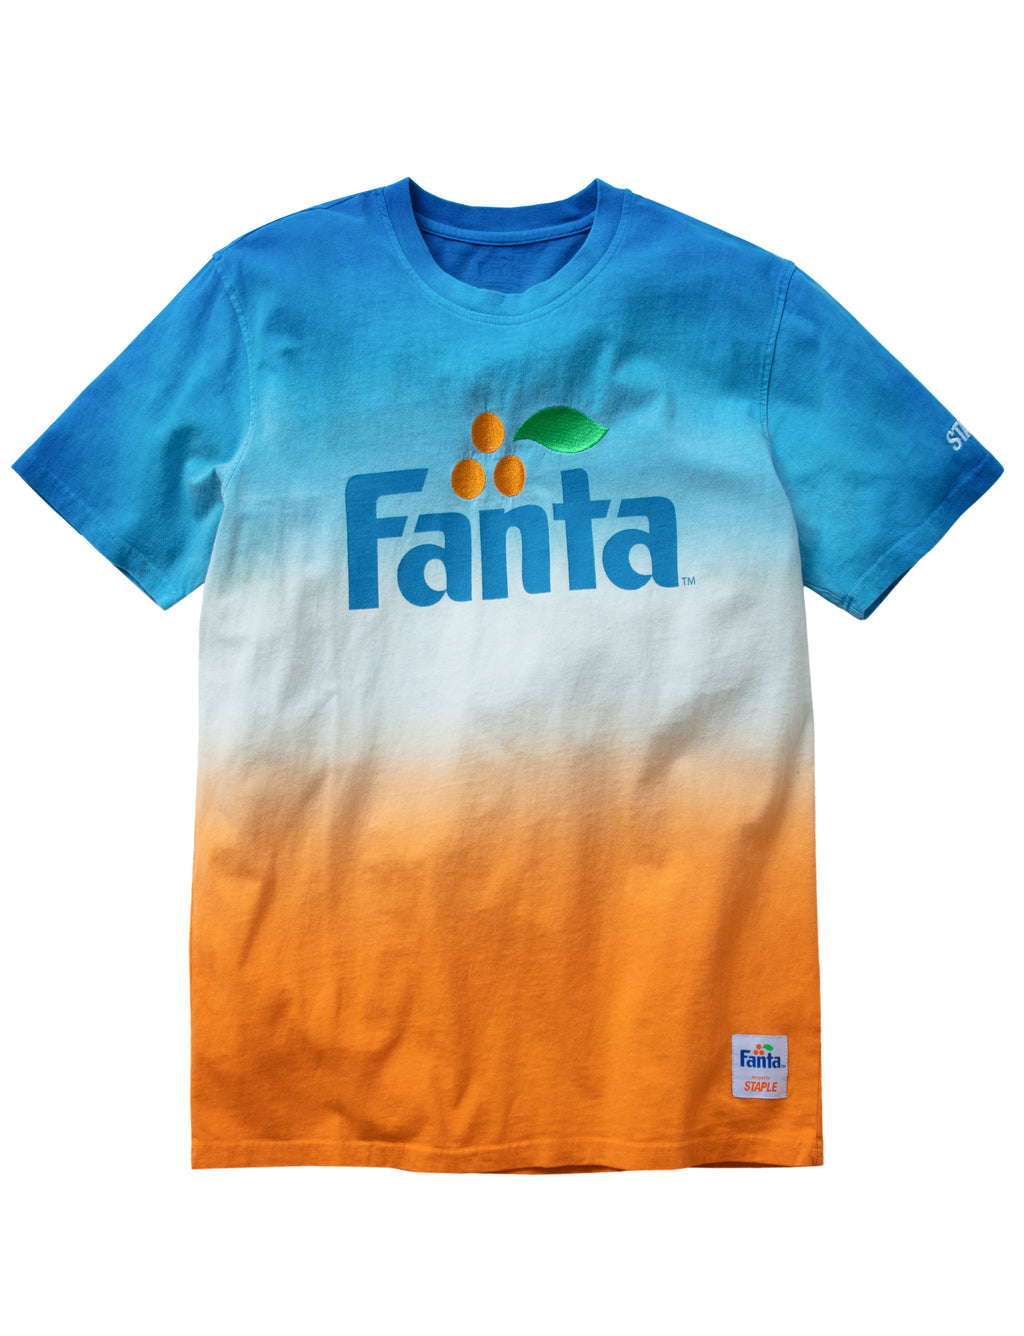 Staple x Fanta™ Fade Tee - Tee | Staple Pigeon